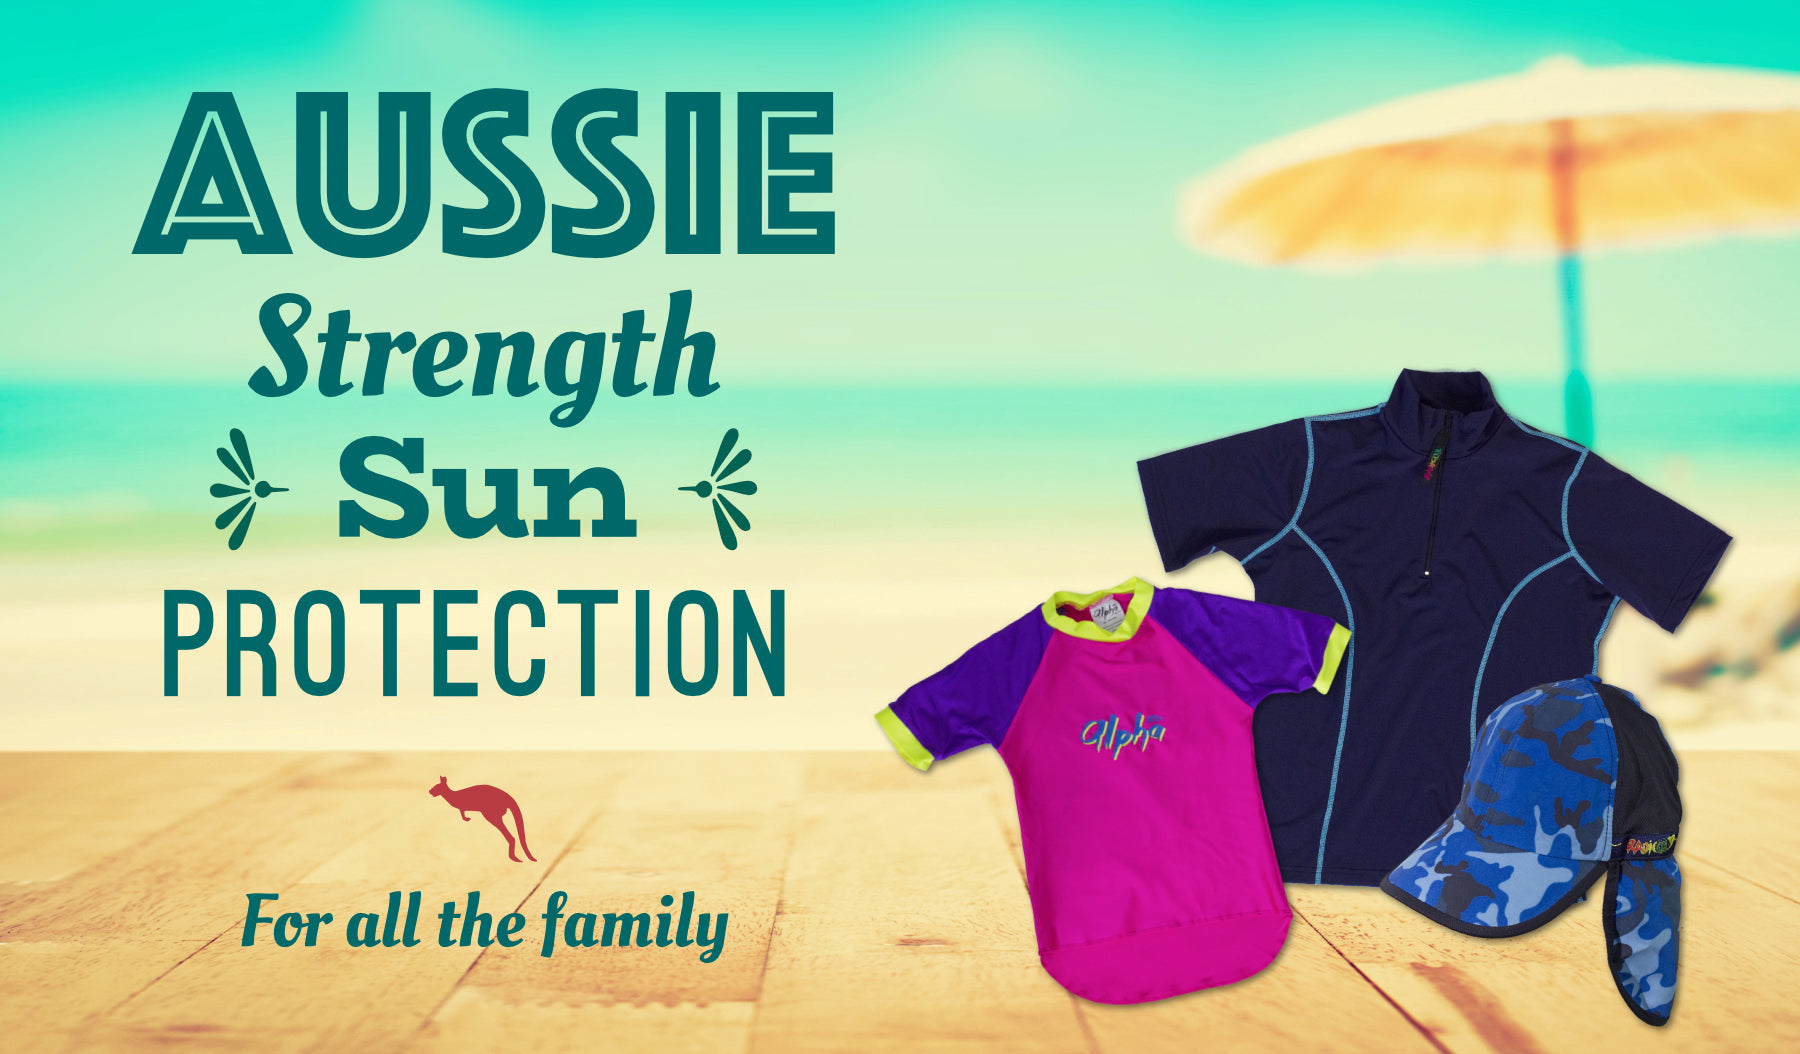 Aussie strength sun protection radicool uv beachwear